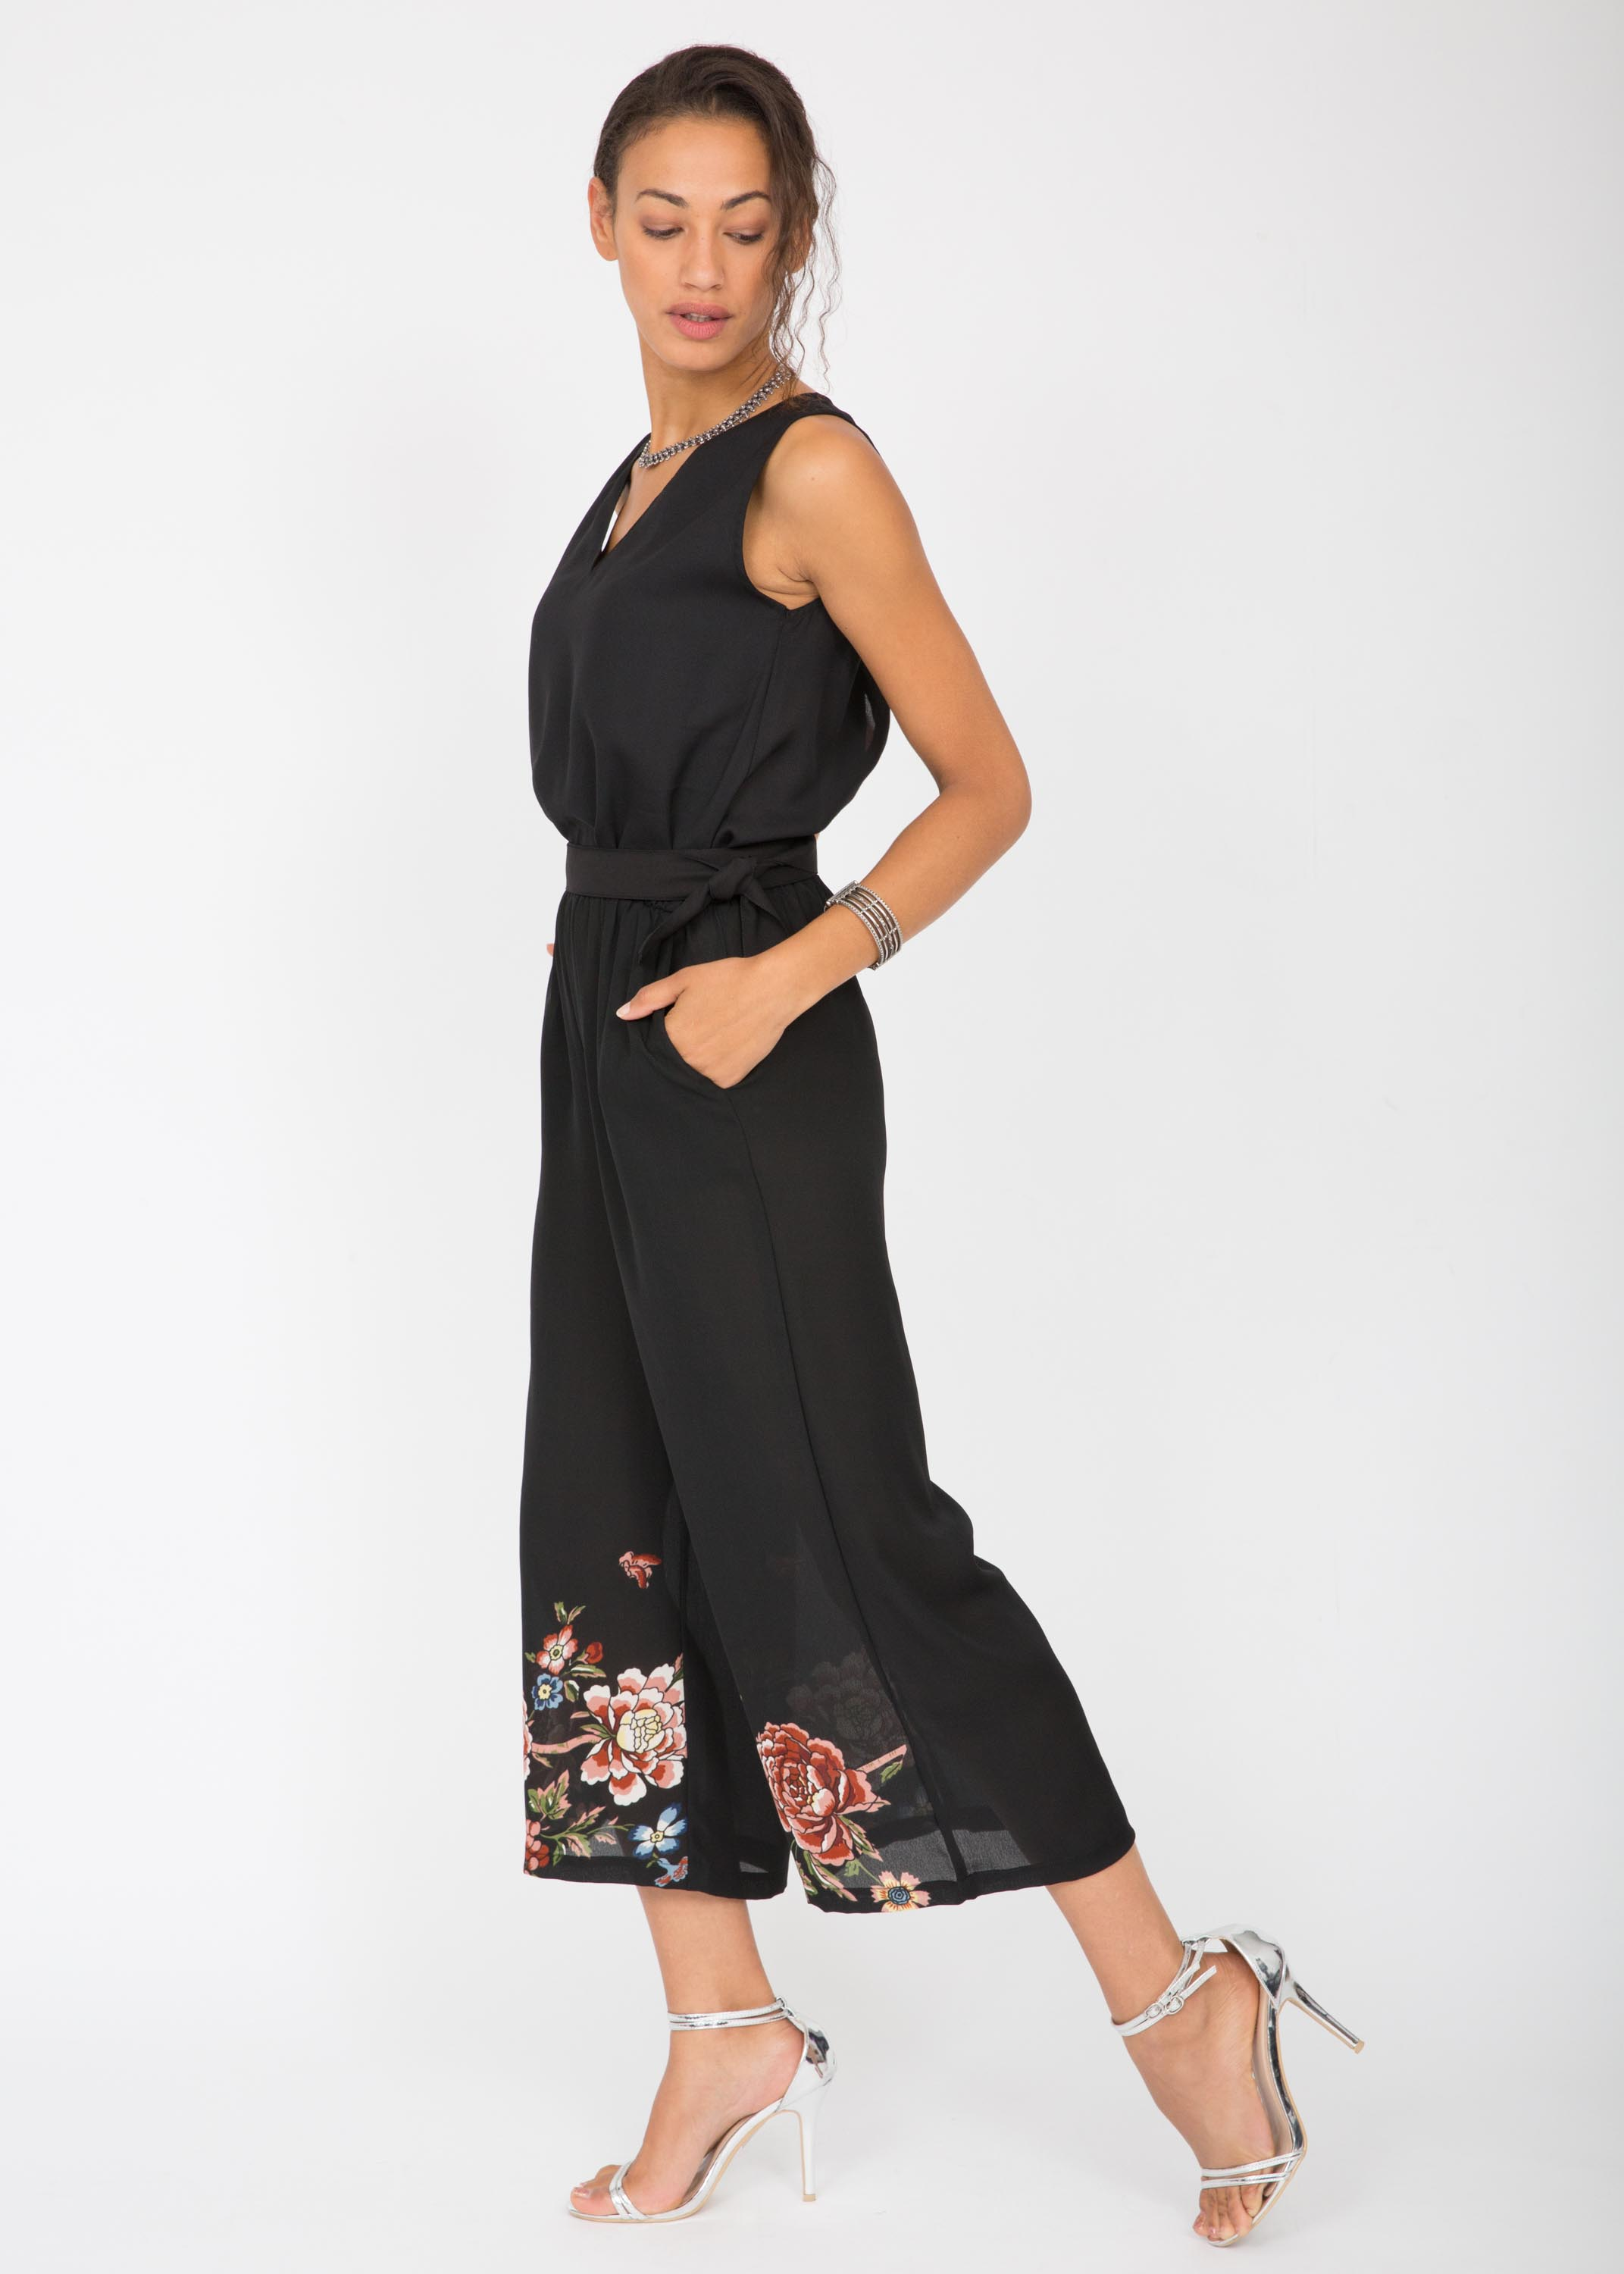 3b7d14bf8b58 Wide Leg Culotte Jumpsuit Black with Floral – likemary